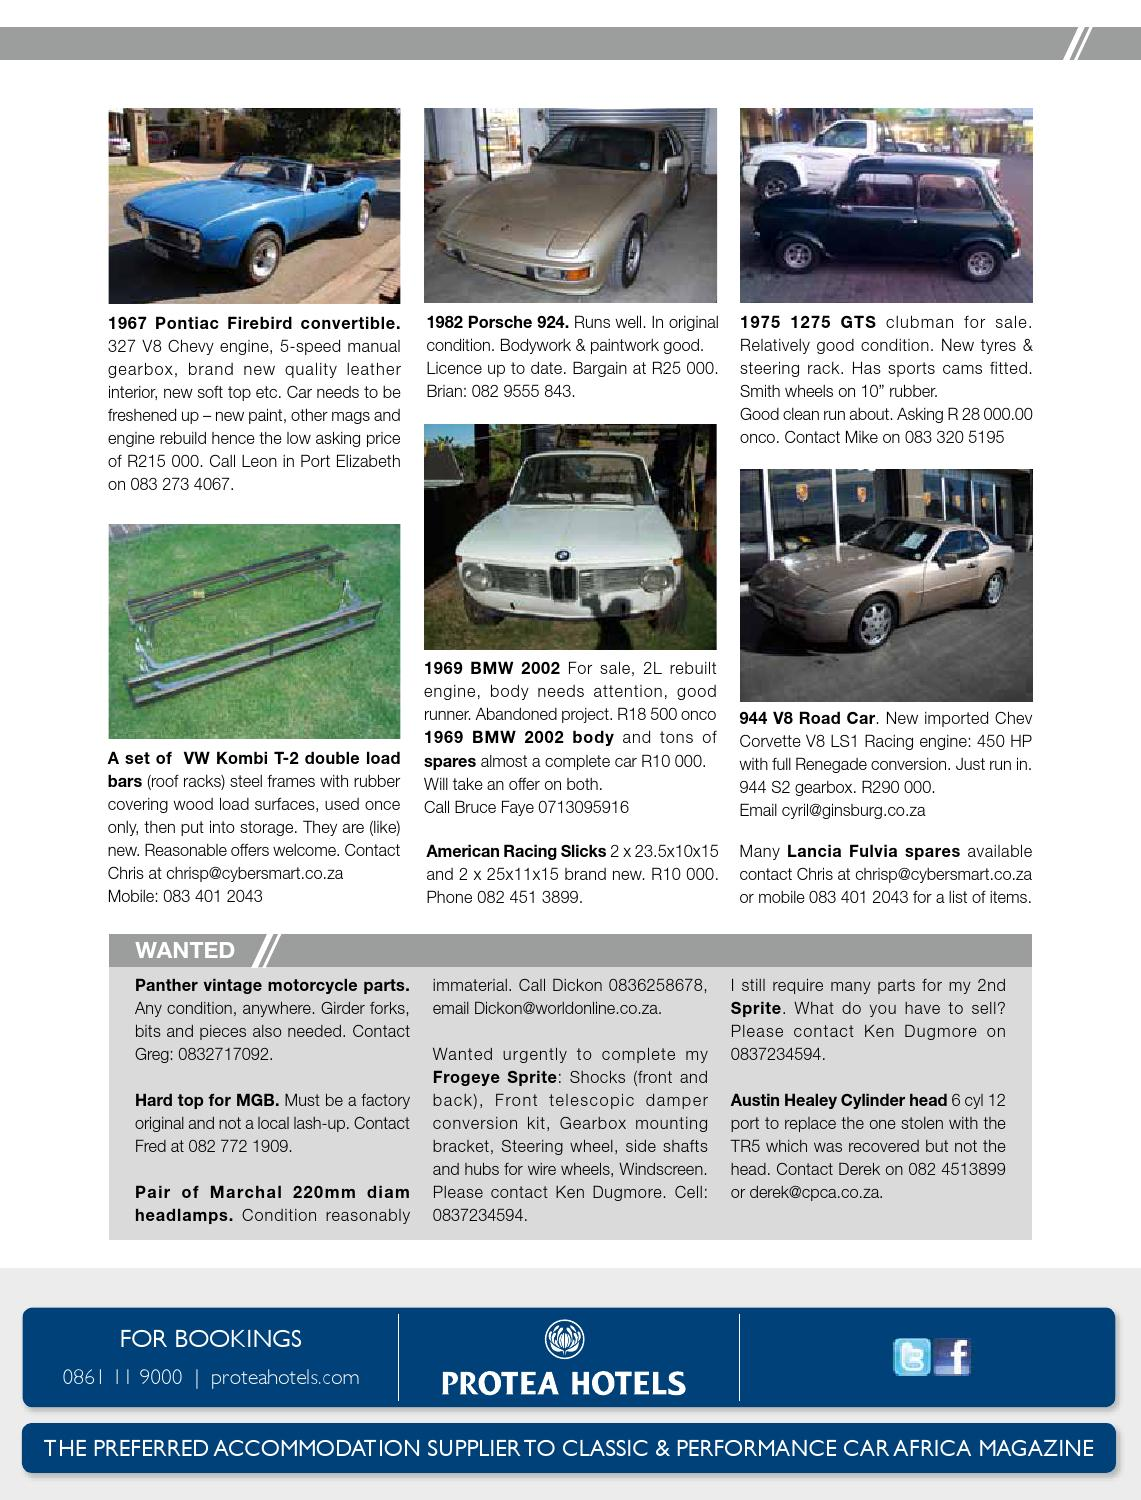 Classic & Performance Car Africa Aug/Sept 2013 by classic